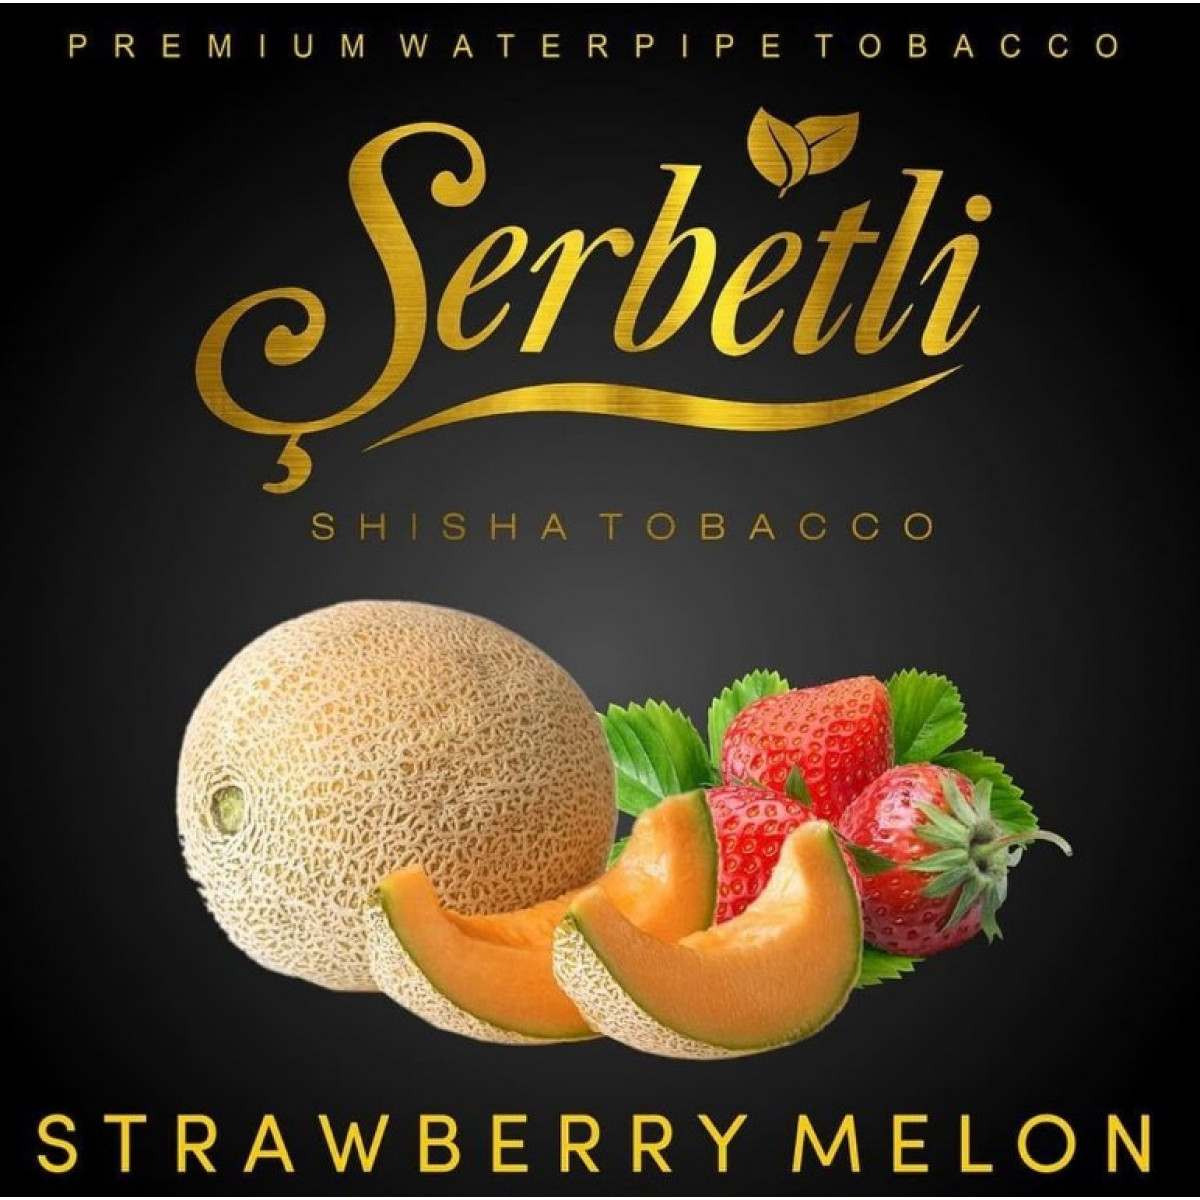 Табак Serbetli Strawberry Melon (Щербетли Клубника Дыня) 50 грамм